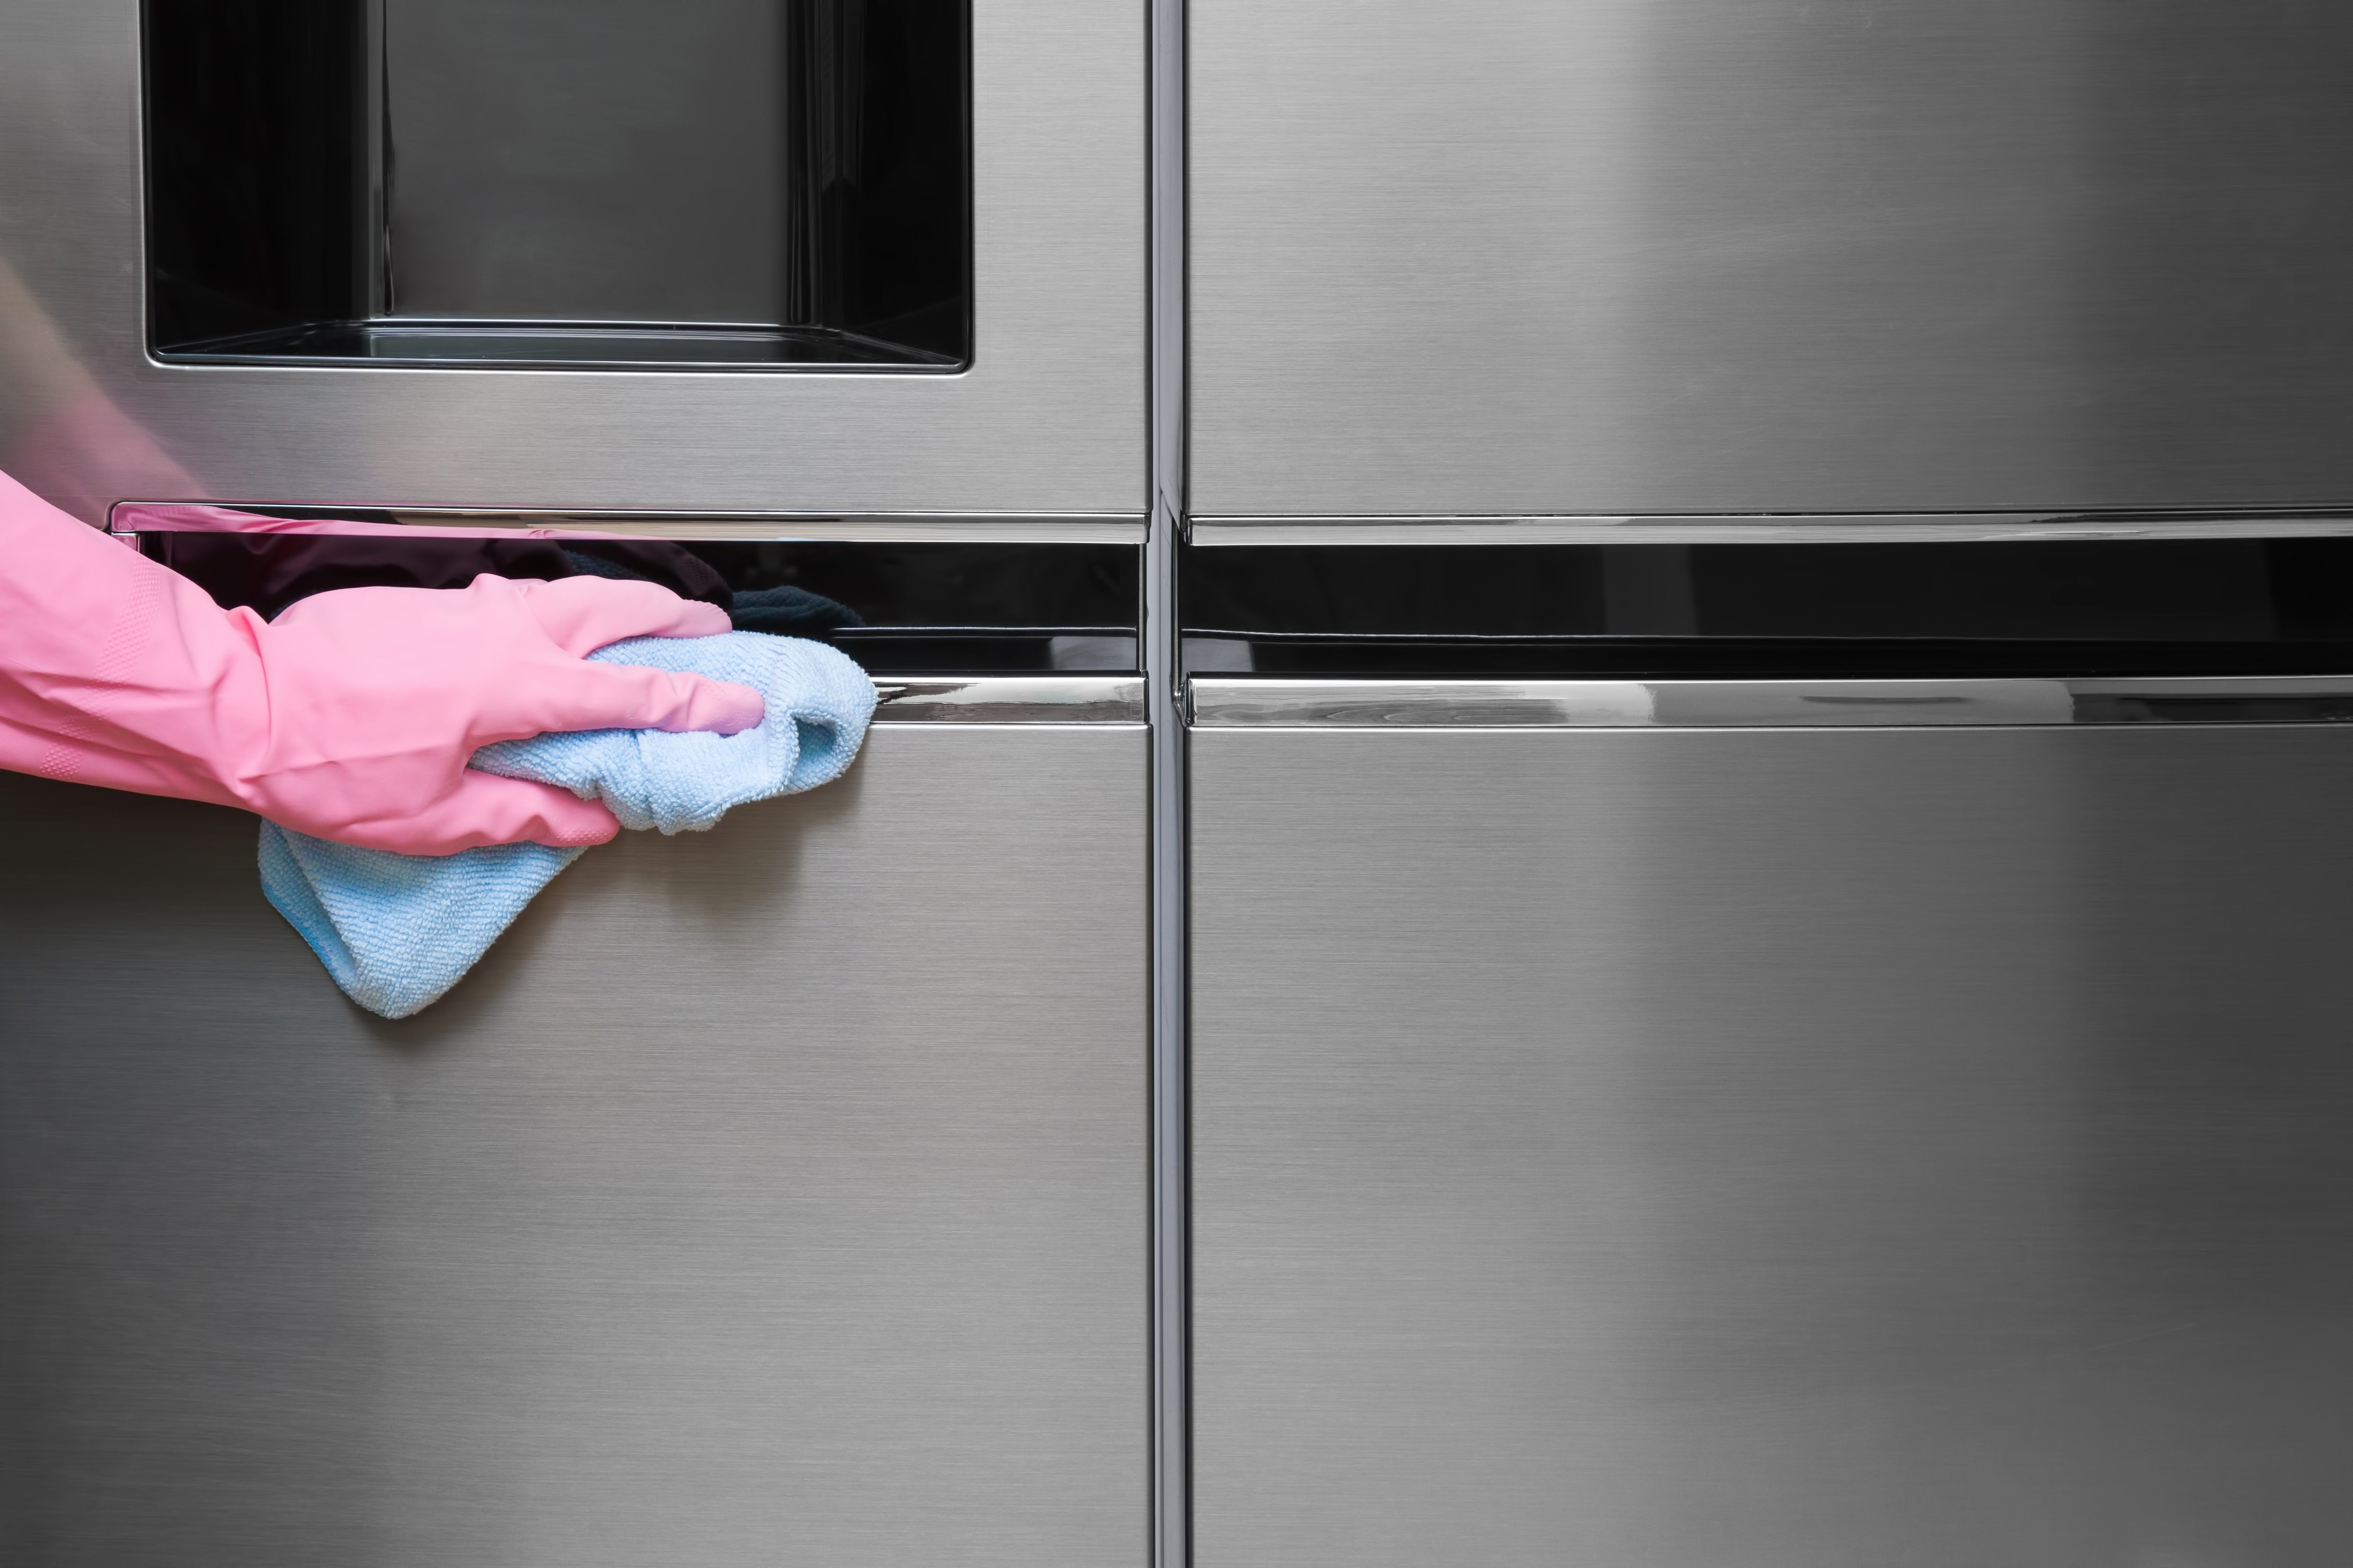 Employee hand in rubber protective glove with micro fiber cloth wiping a fridge's stainless doors. Early spring or regular cleanup. Commercial cleaning company concept.